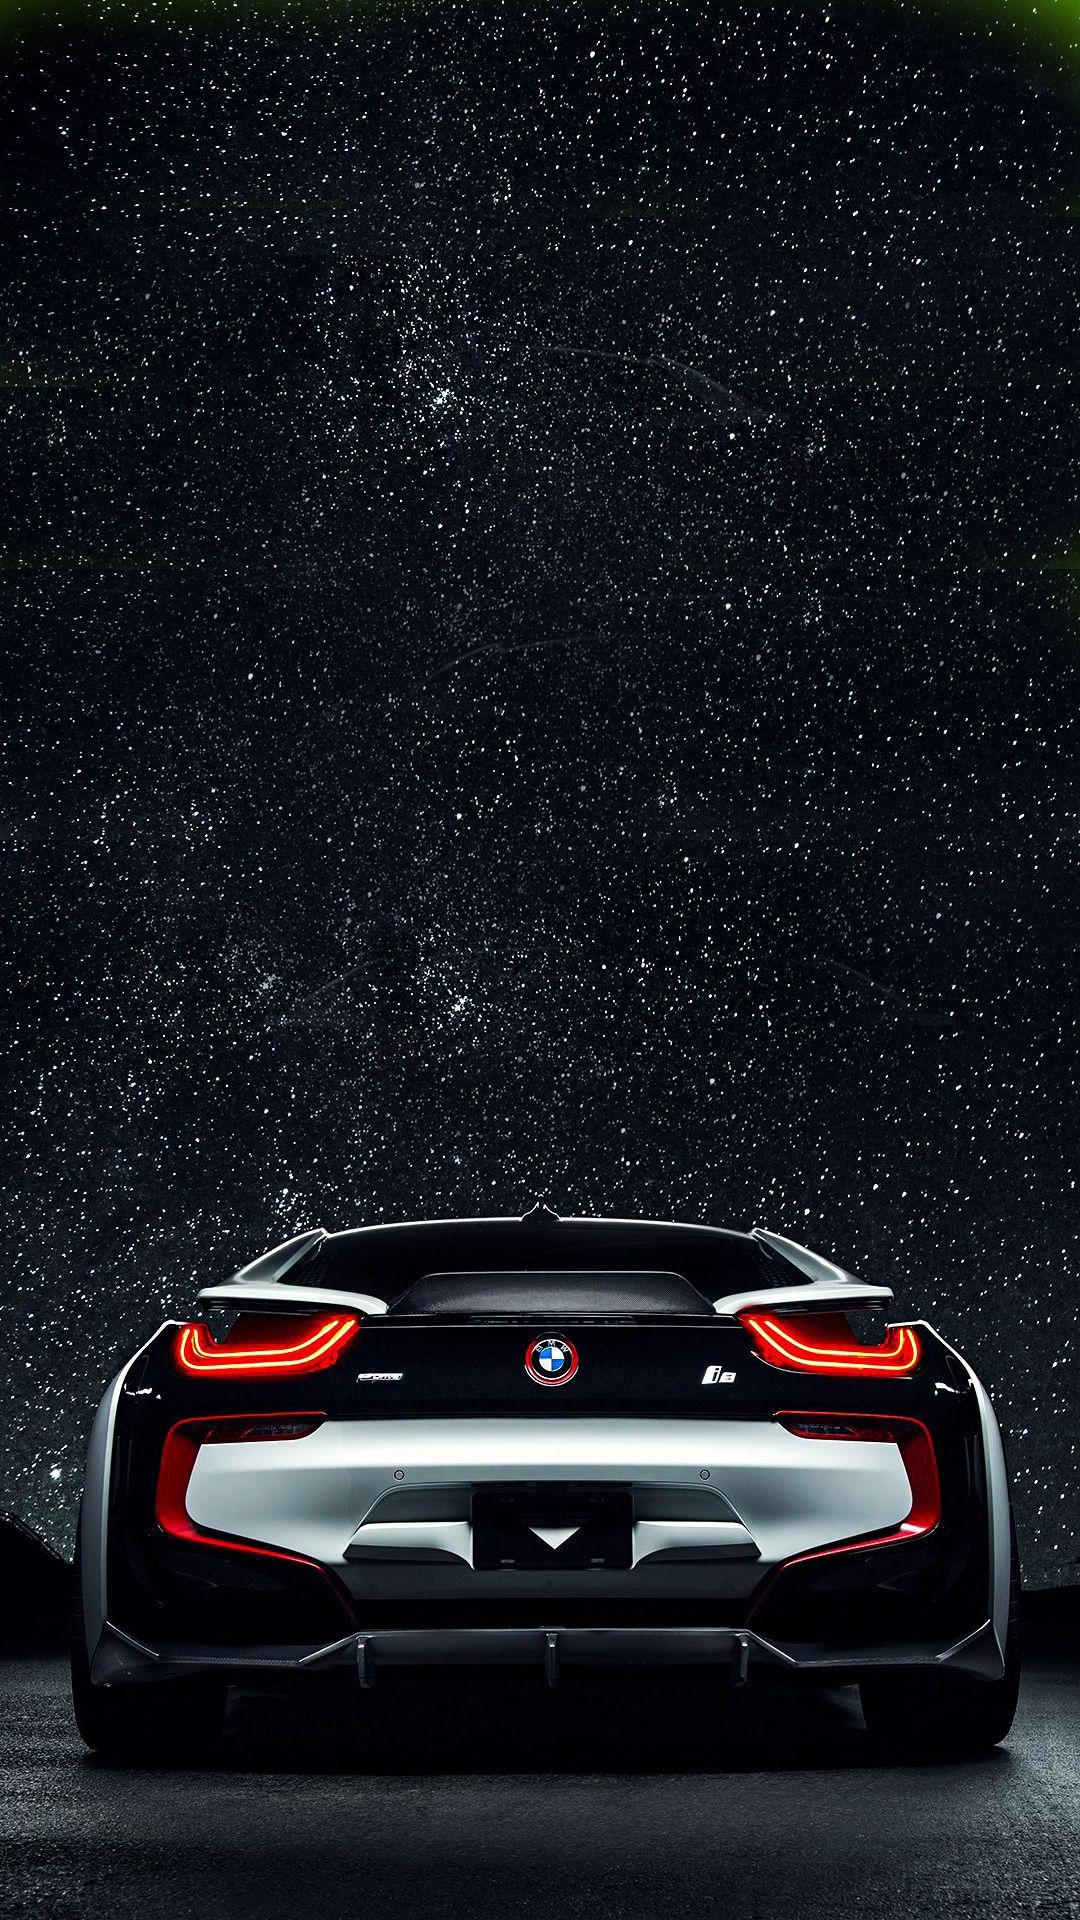 Bmw Wallpaper Hd 2560x1440 Bmw Car With Girl Wallpaper Bmw Wallpaper Iphone Bmw Hd Wallpapers For Laptop Audi Car Images Download Bm In 2020 Bmw Wallpapers Bmw Bmw Car